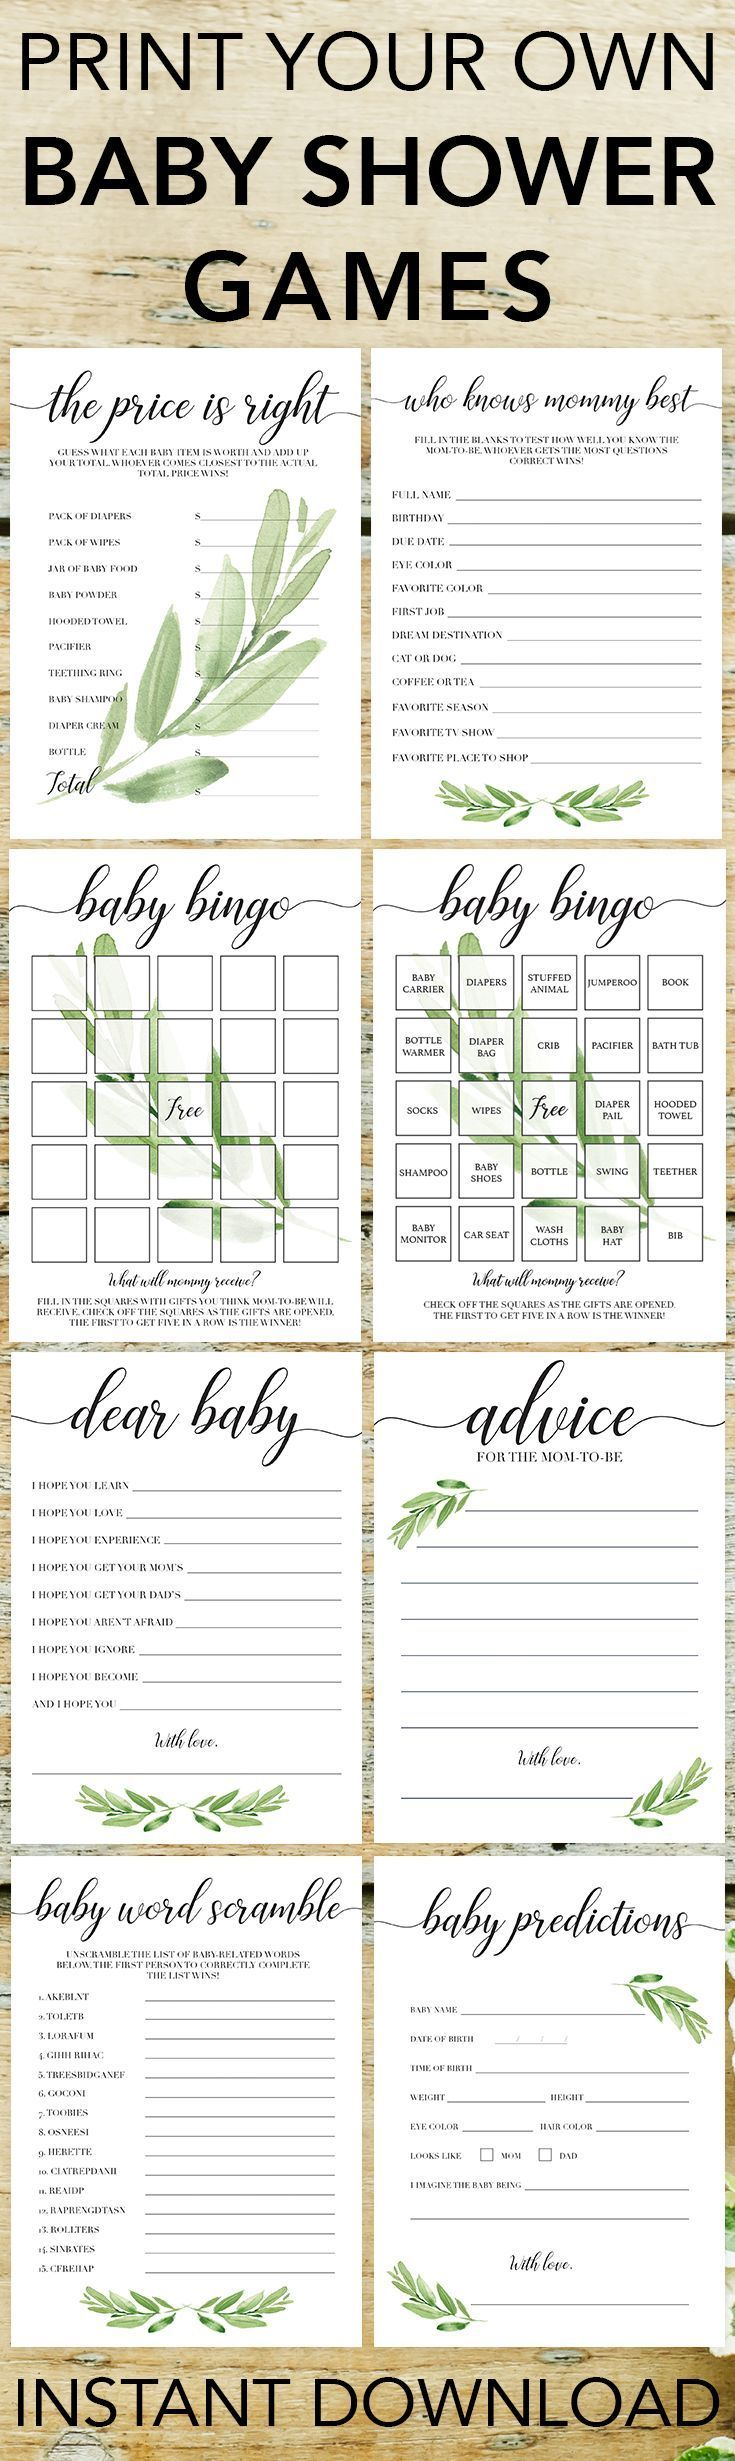 Popular baby shower games by LittleSizzle. Click through to download yours or re-pin for later! Printable games for baby shower gender neutral. Entertain large groups of guests with these gorgeous greenery printable games for baby shower. Perfect for any #BabyGames